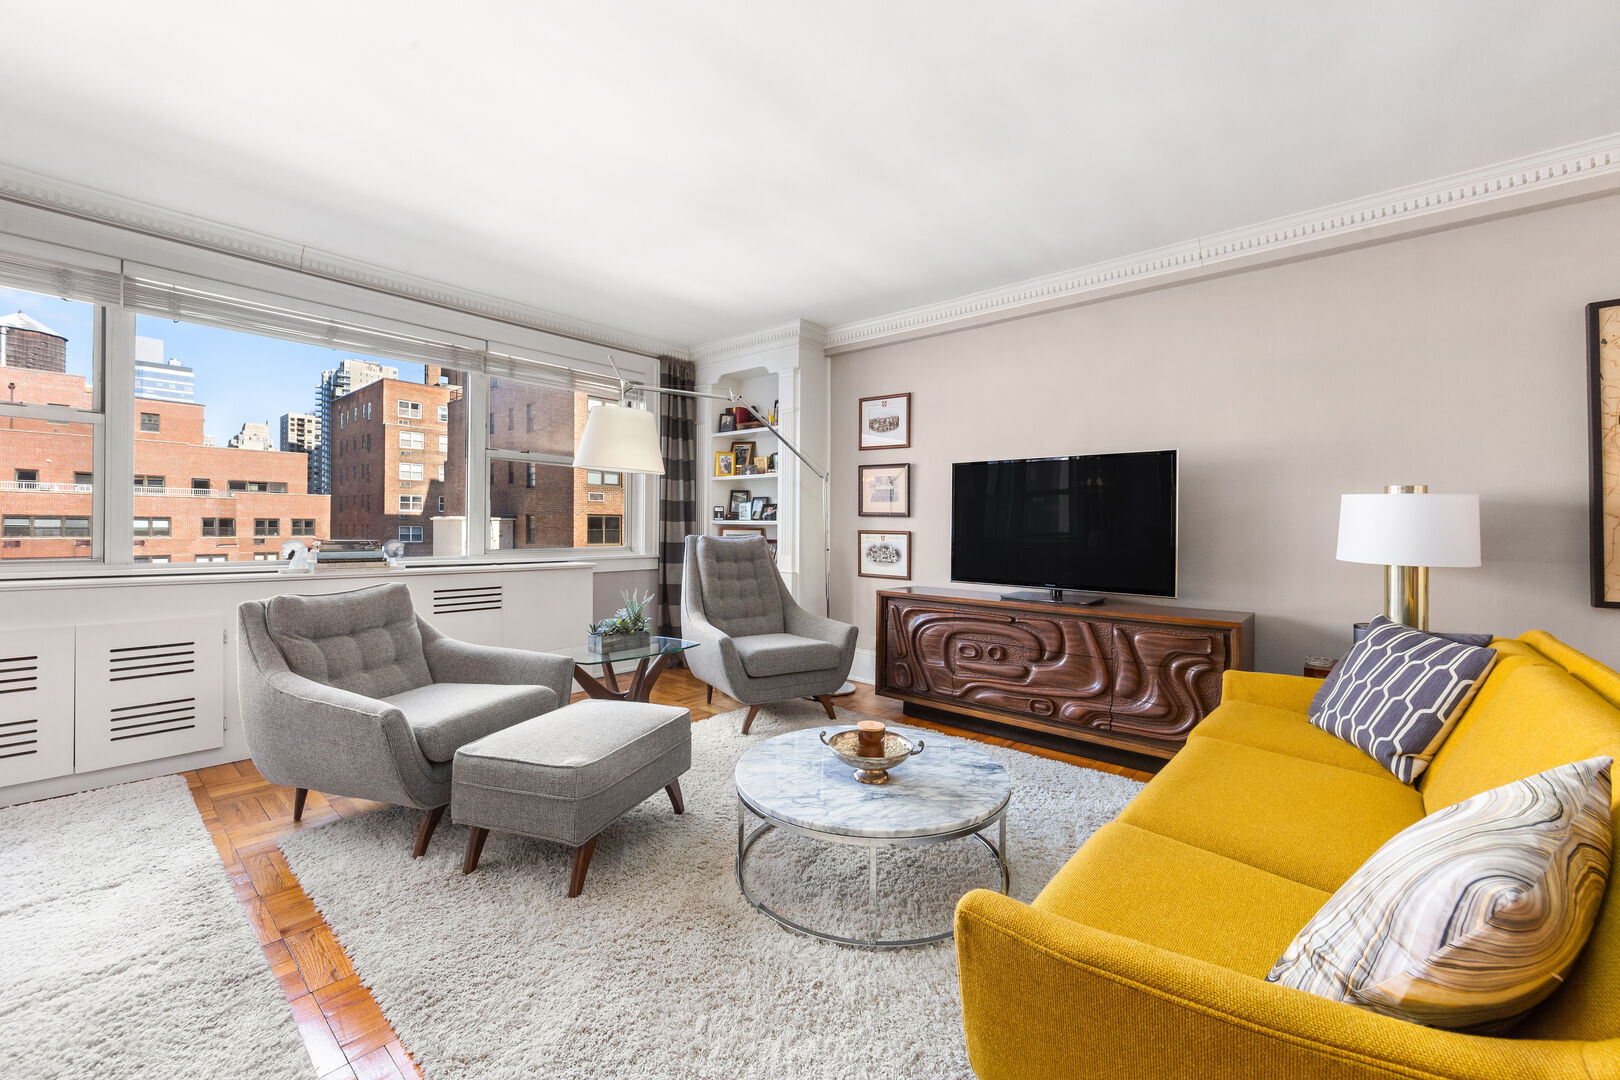 Apartment for sale at 233 East 69th Street, Apt 12-D